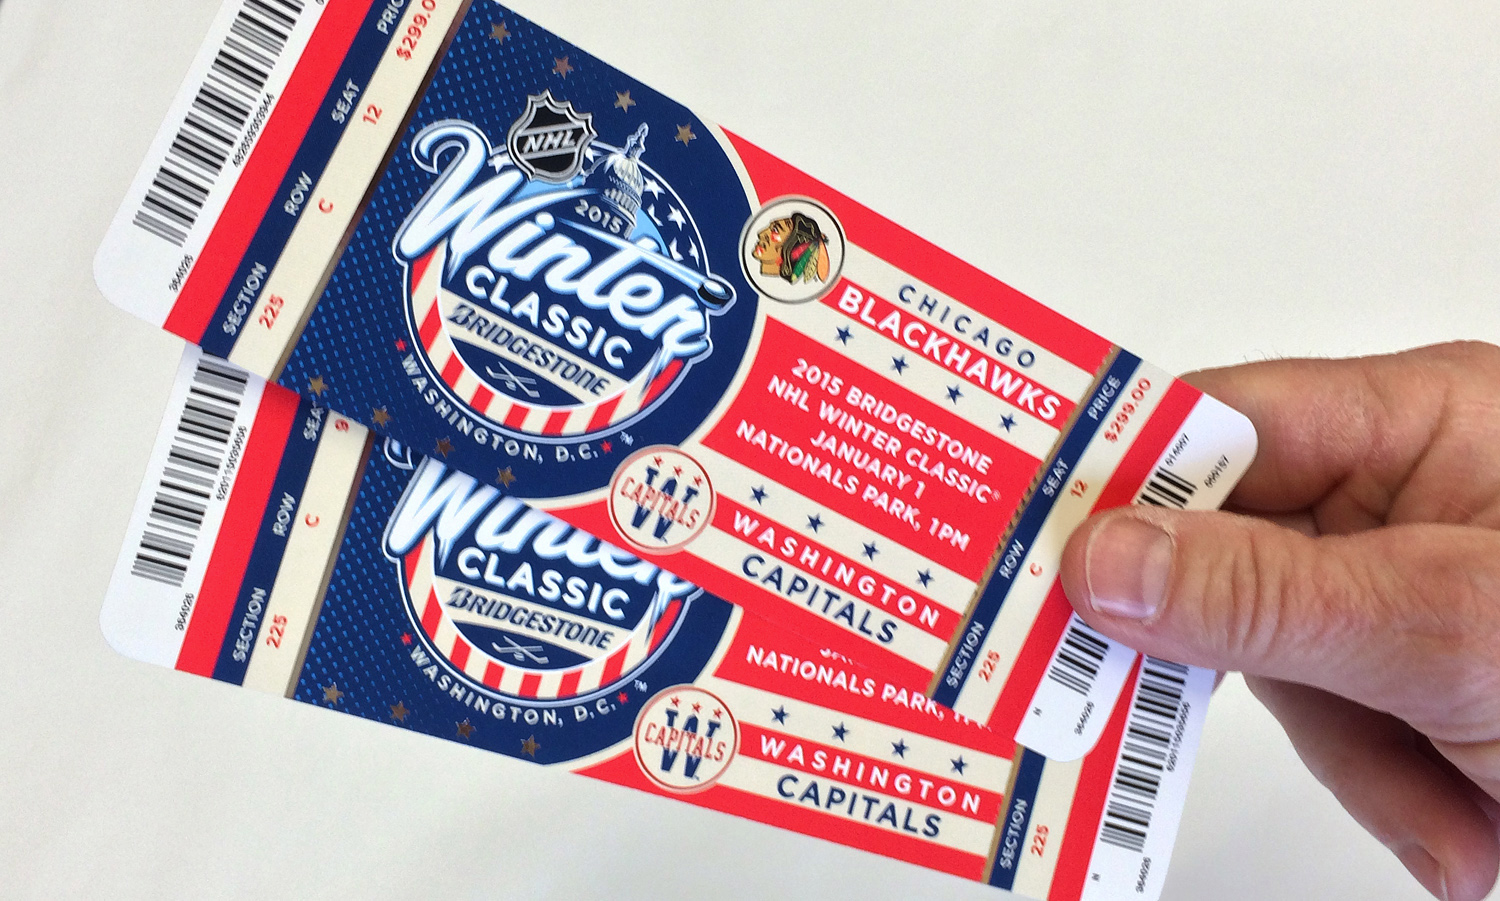 nhl winter classic ticket designs by fanbrandz